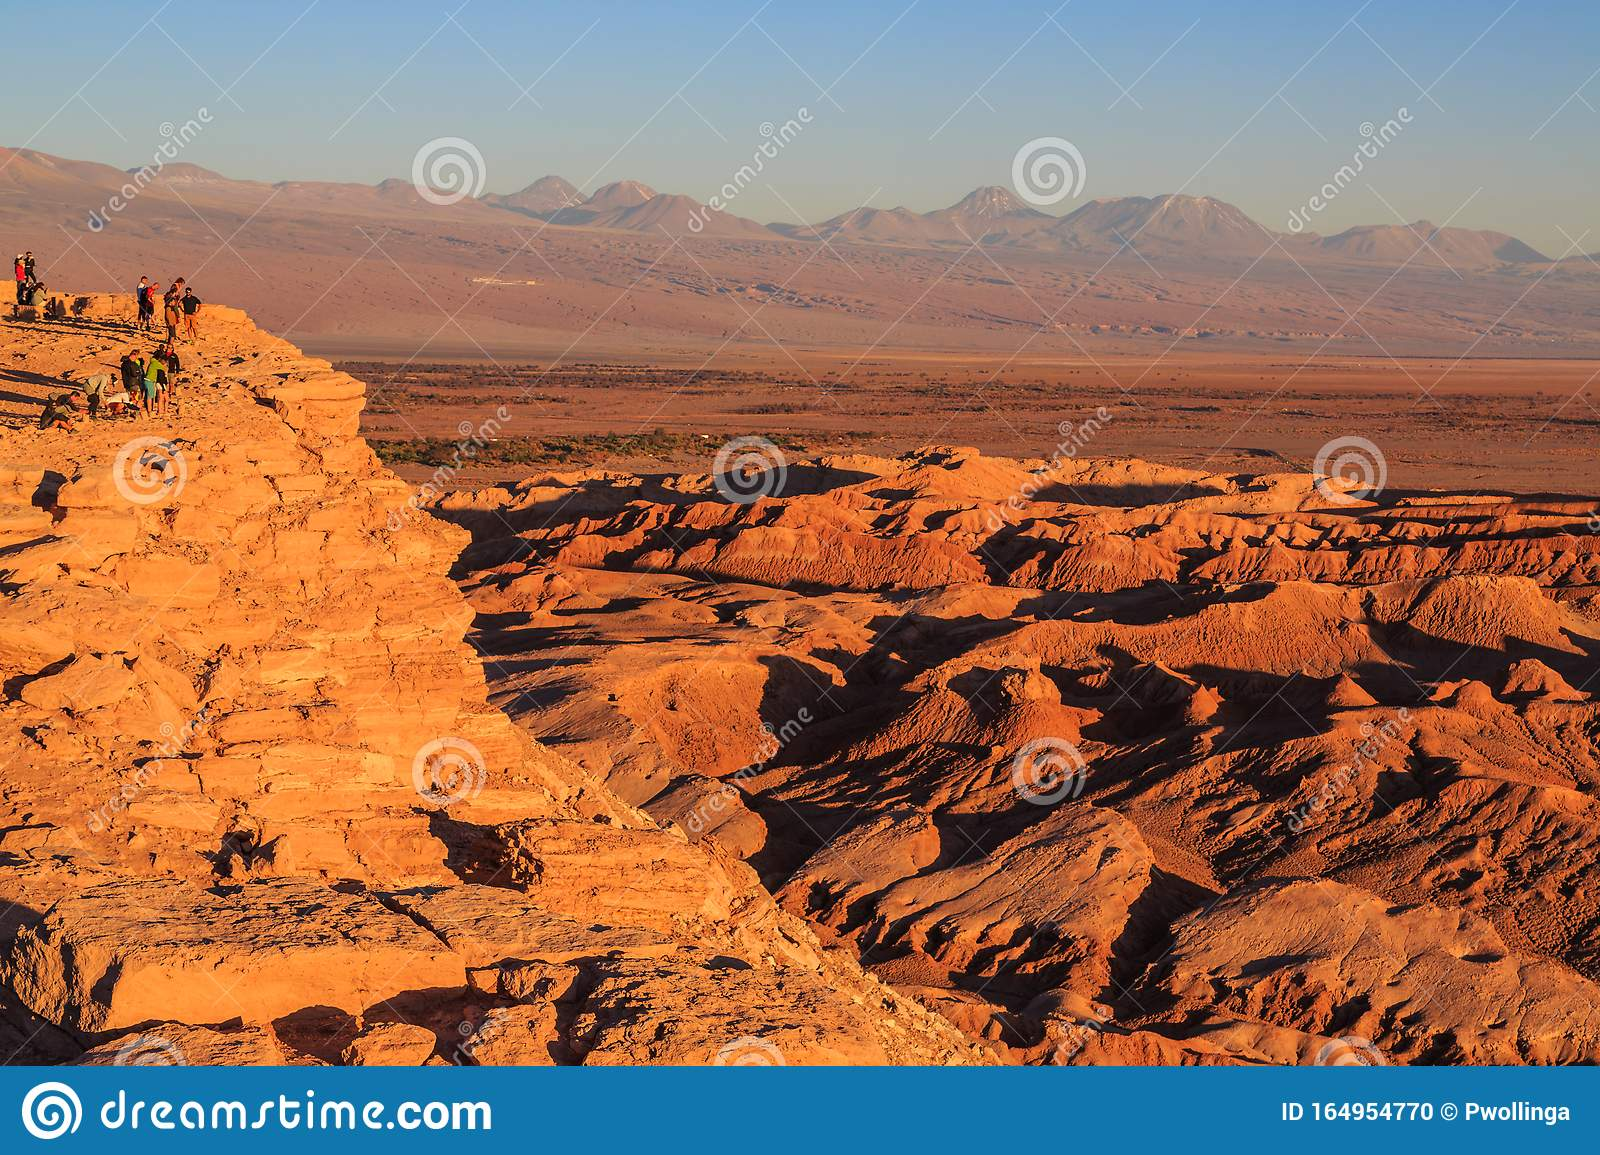 Sunset Over The Moon Valley Valle De La Luna In The Atacama Desert Chile Editorial Image Image Of Andes Nature 164954770